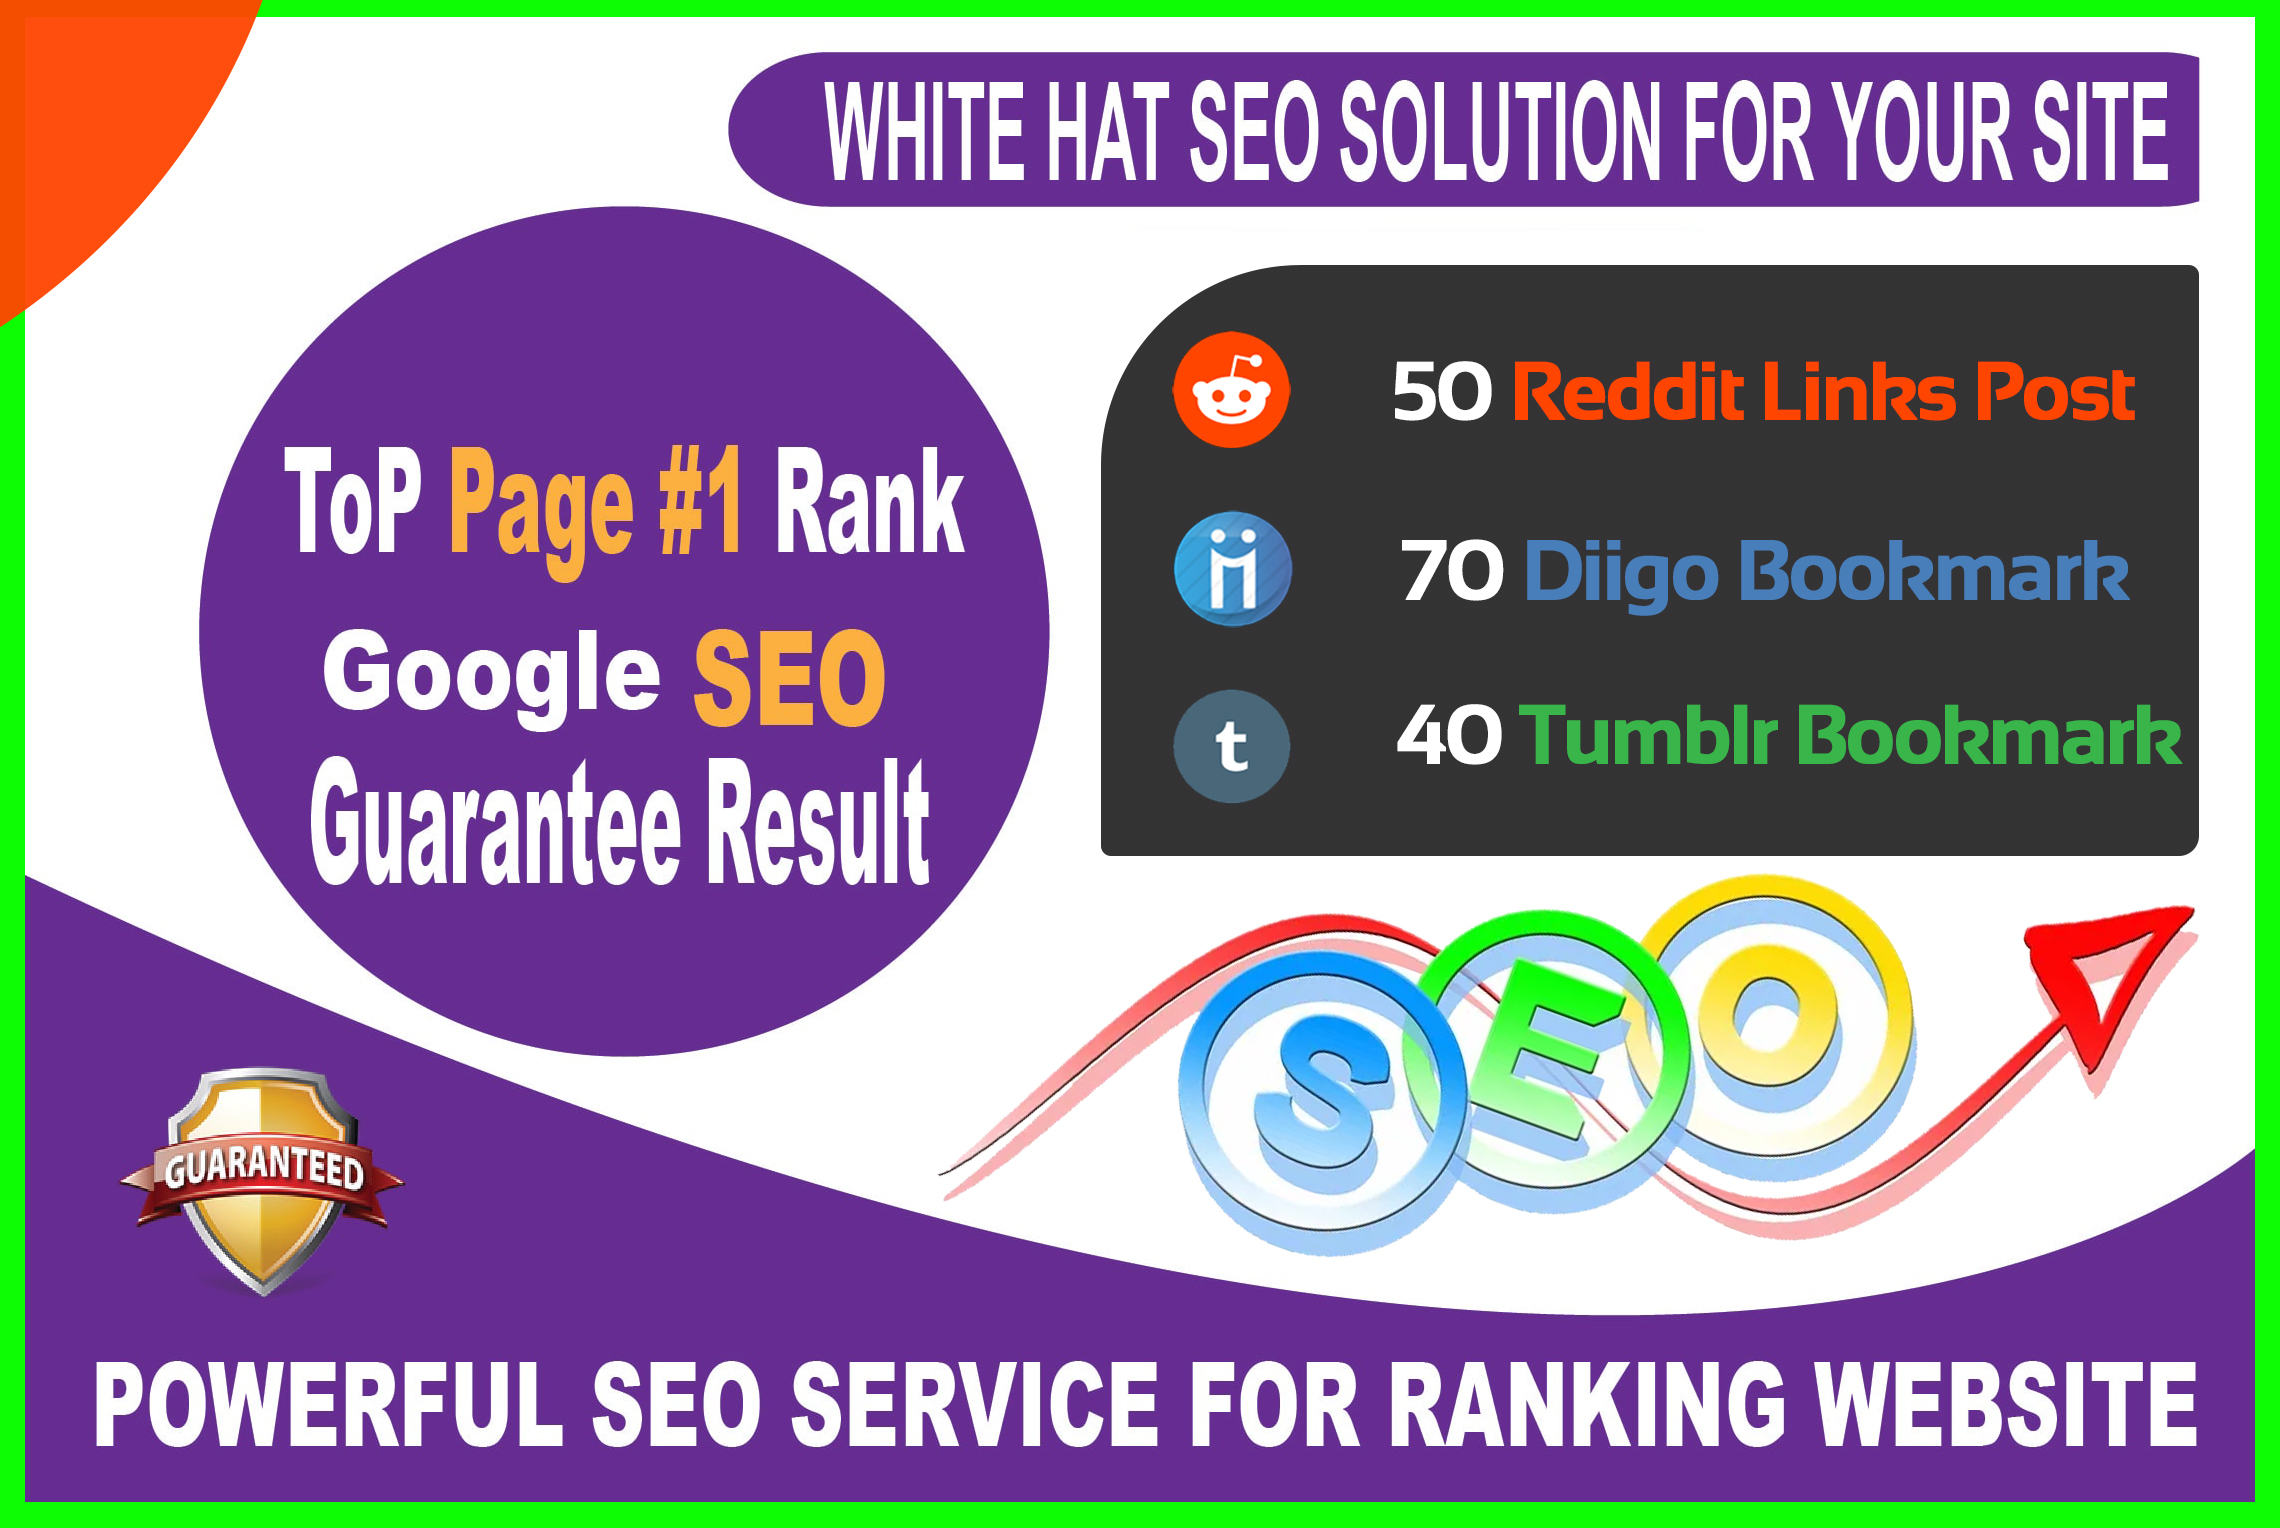 50 Reddit, 70 Diigo, 40 Tumblr Signals Powerful Social Bookmarks Rank your website in Google 1st page